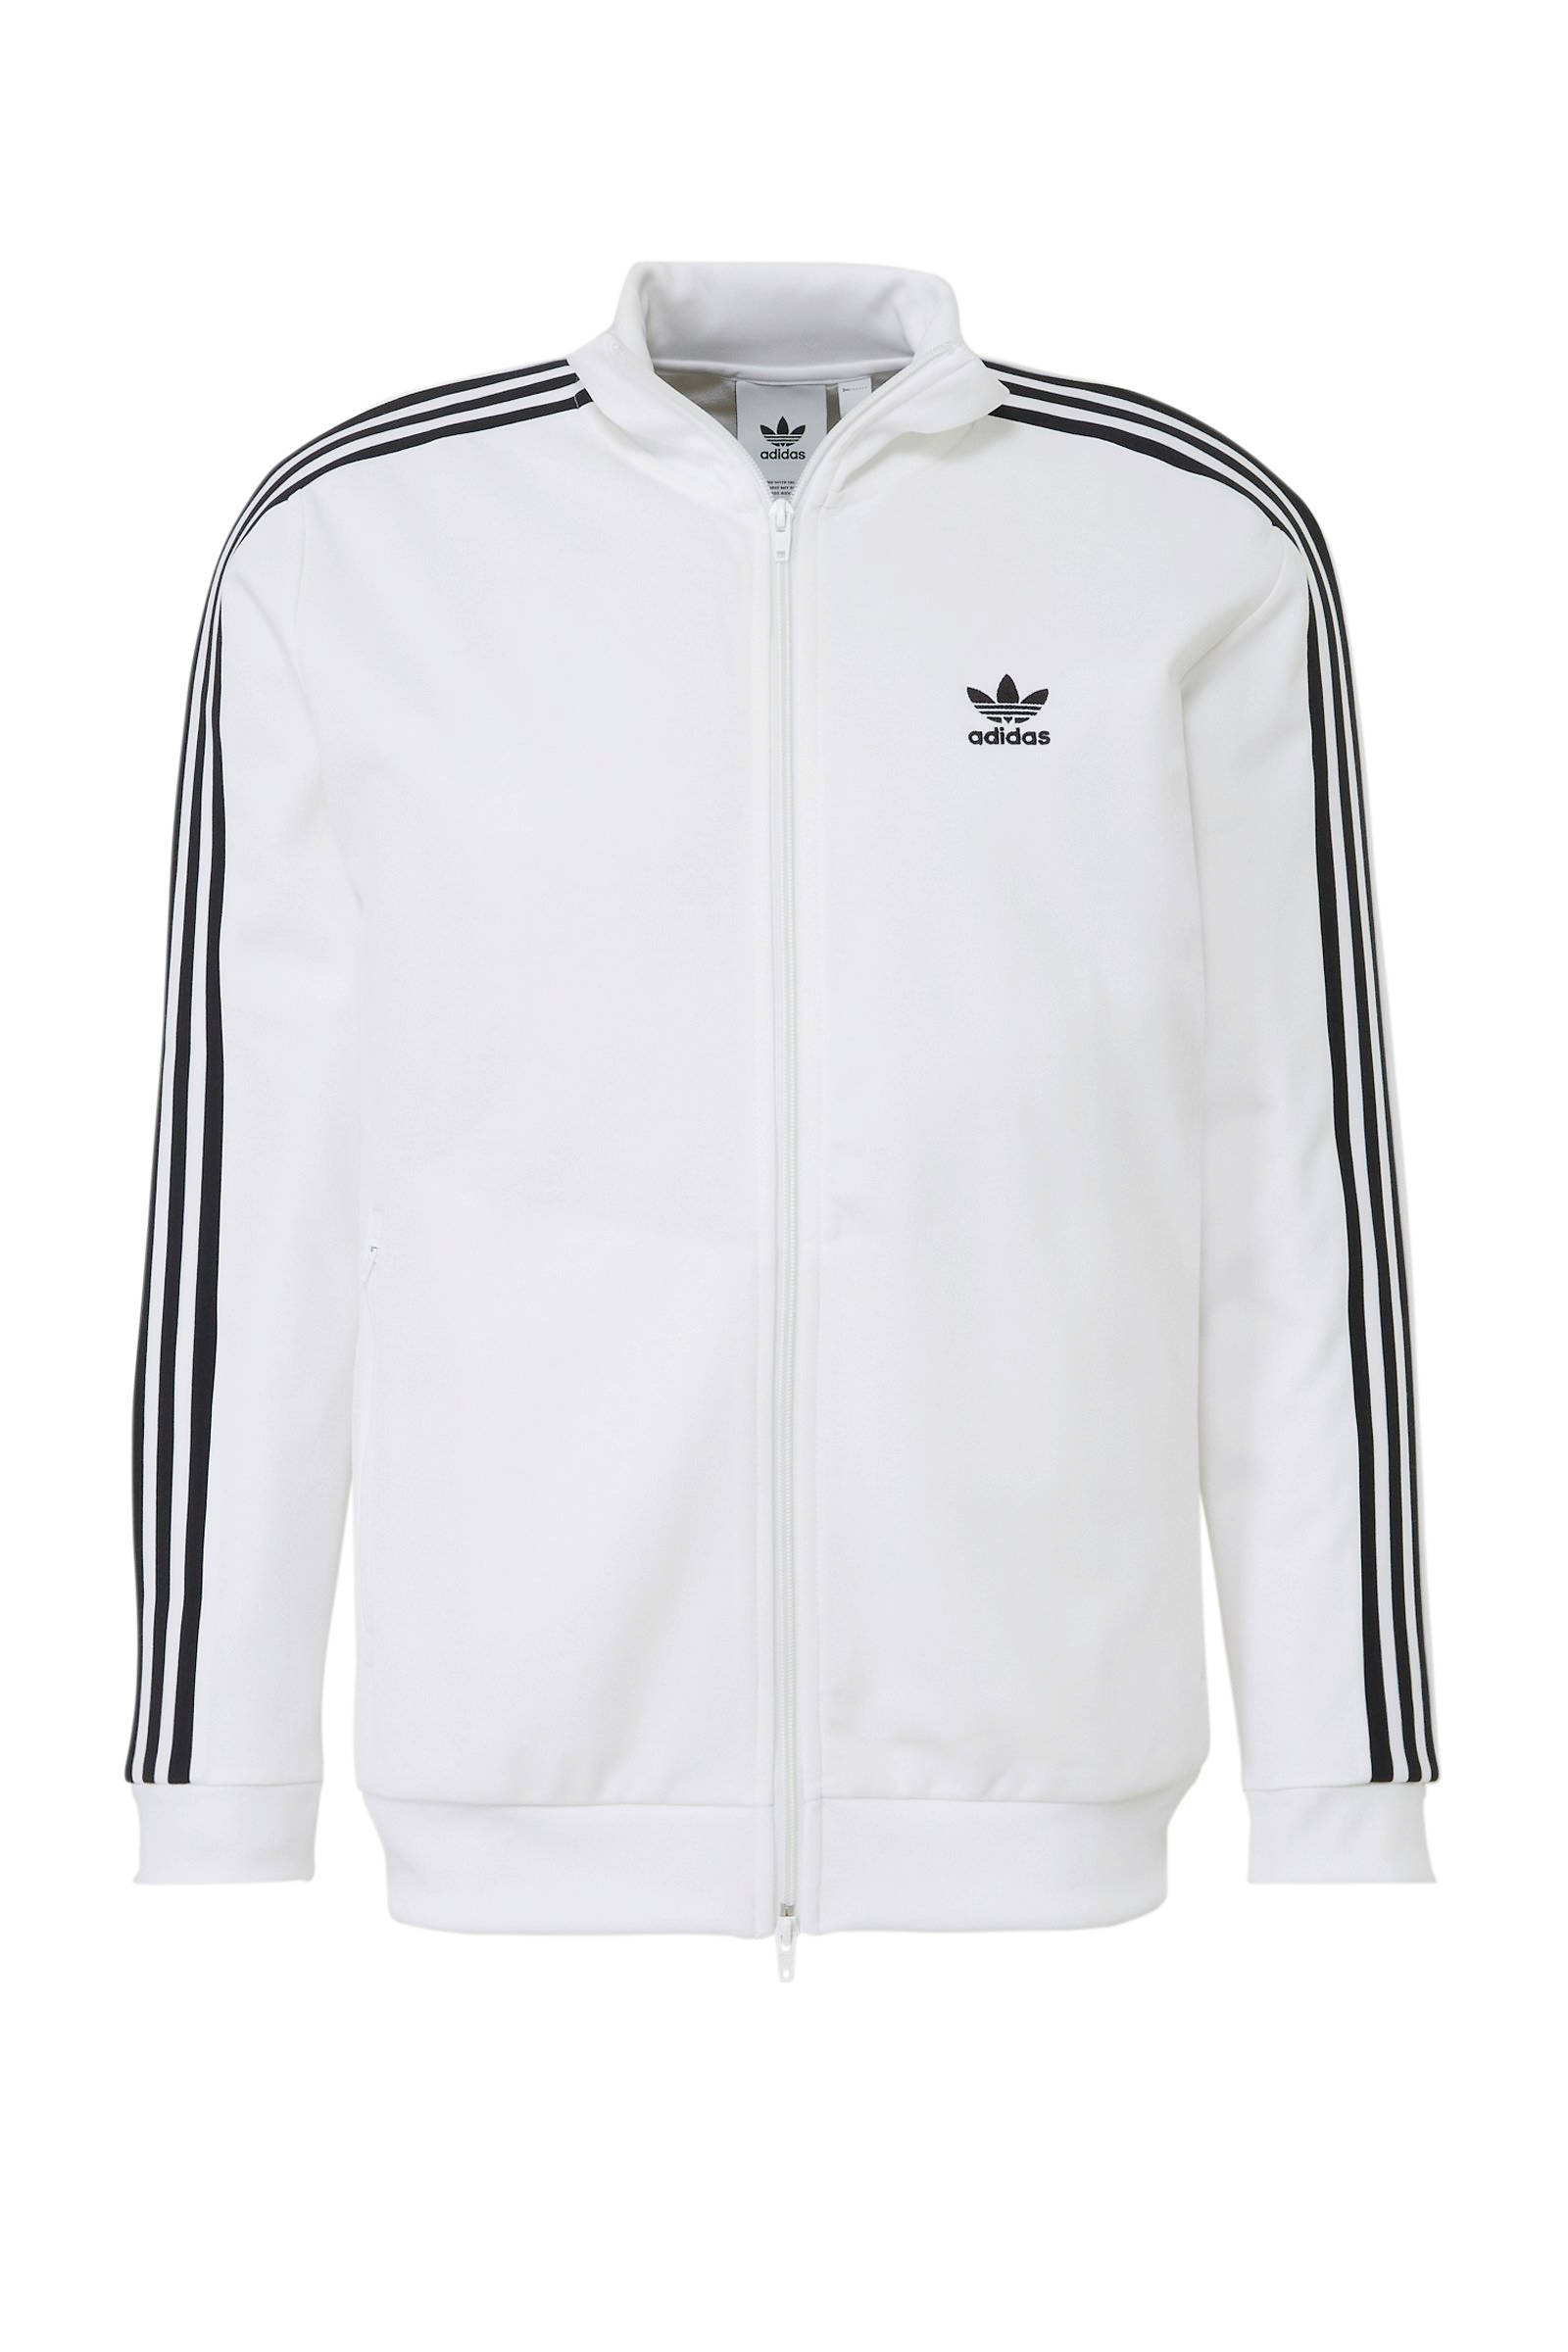 adidas Originals vest wit | wehkamp